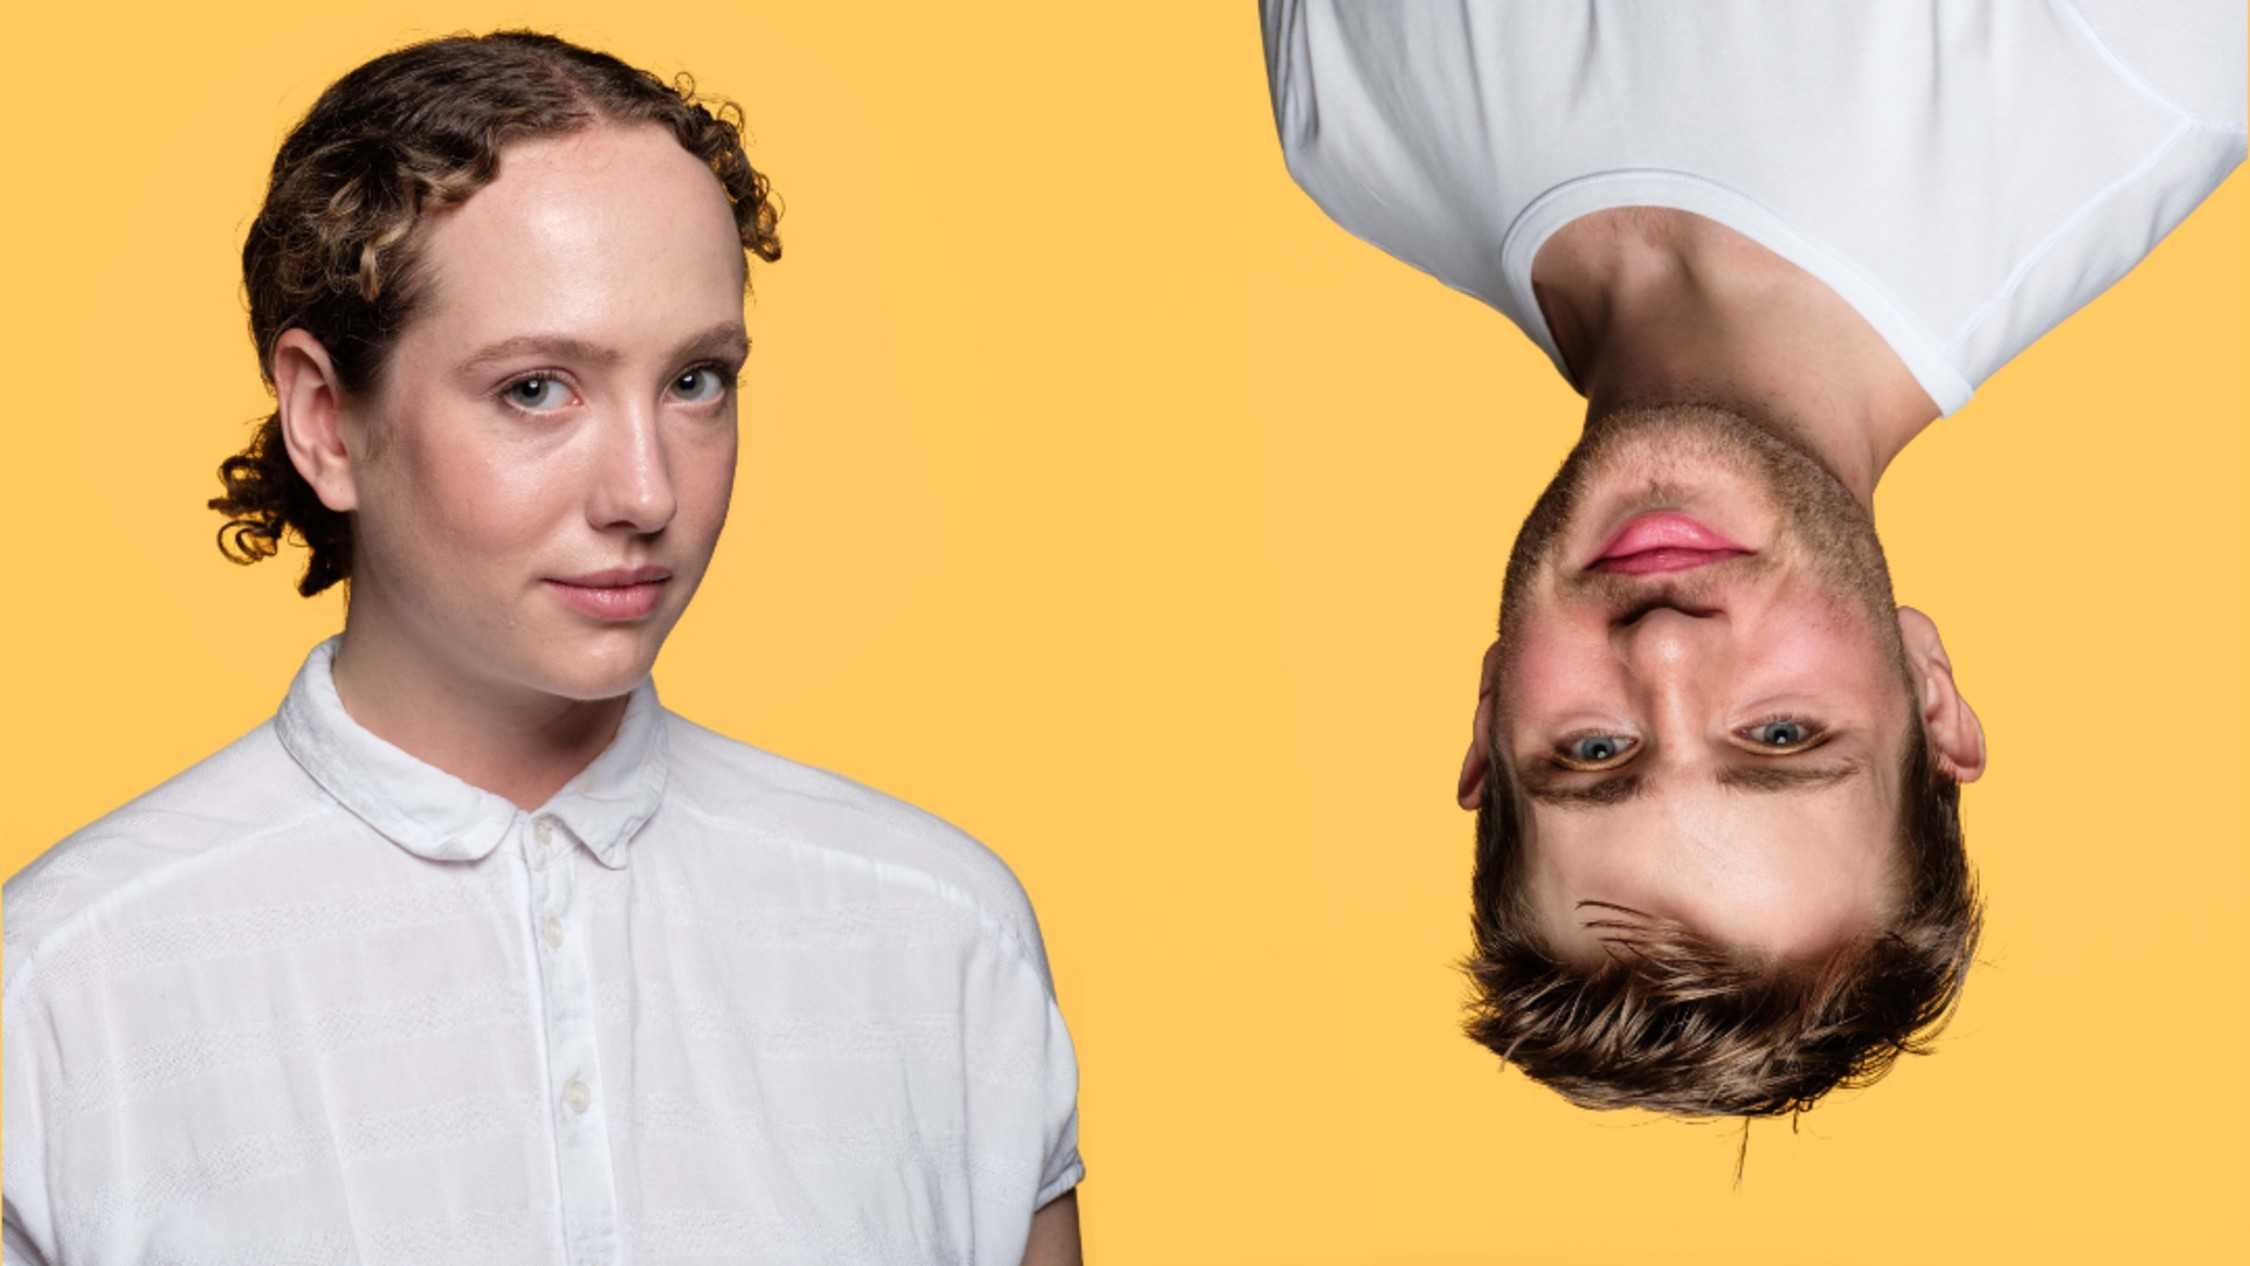 a man and a woman in white shirts, him upside down, against a yellow backdrop